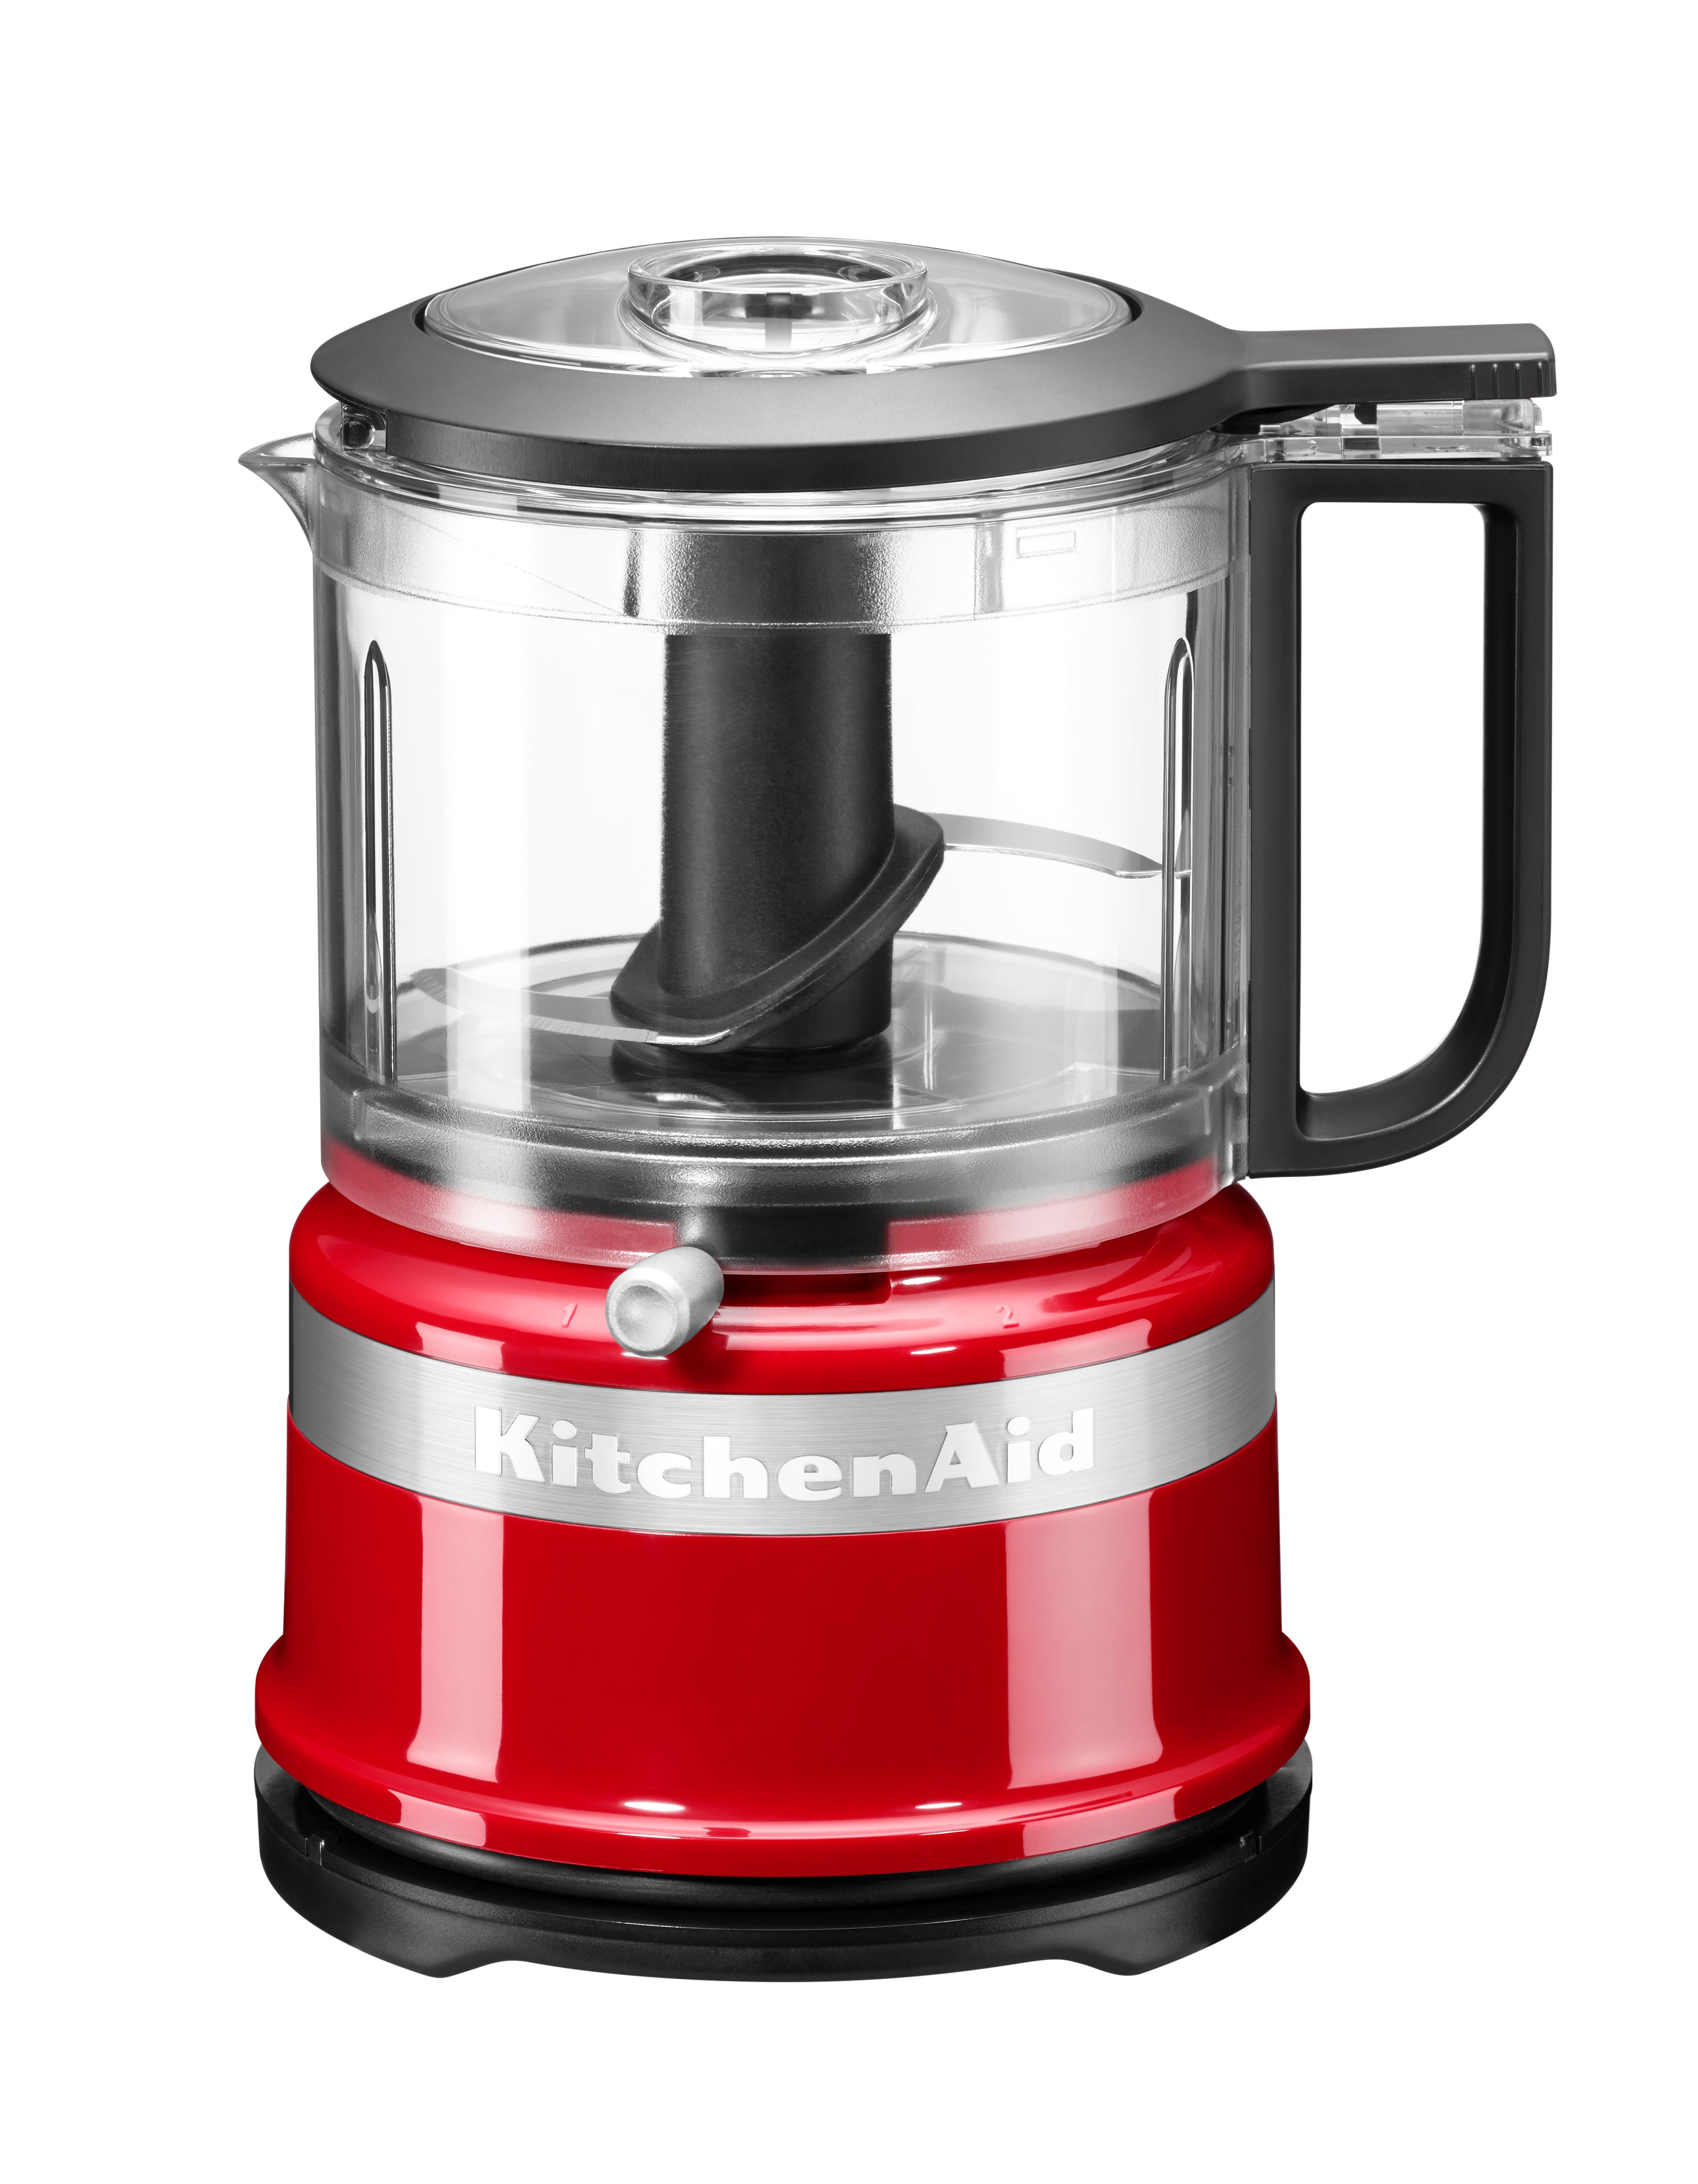 kitchenaid launched a new mini food processor home appliances world. Black Bedroom Furniture Sets. Home Design Ideas